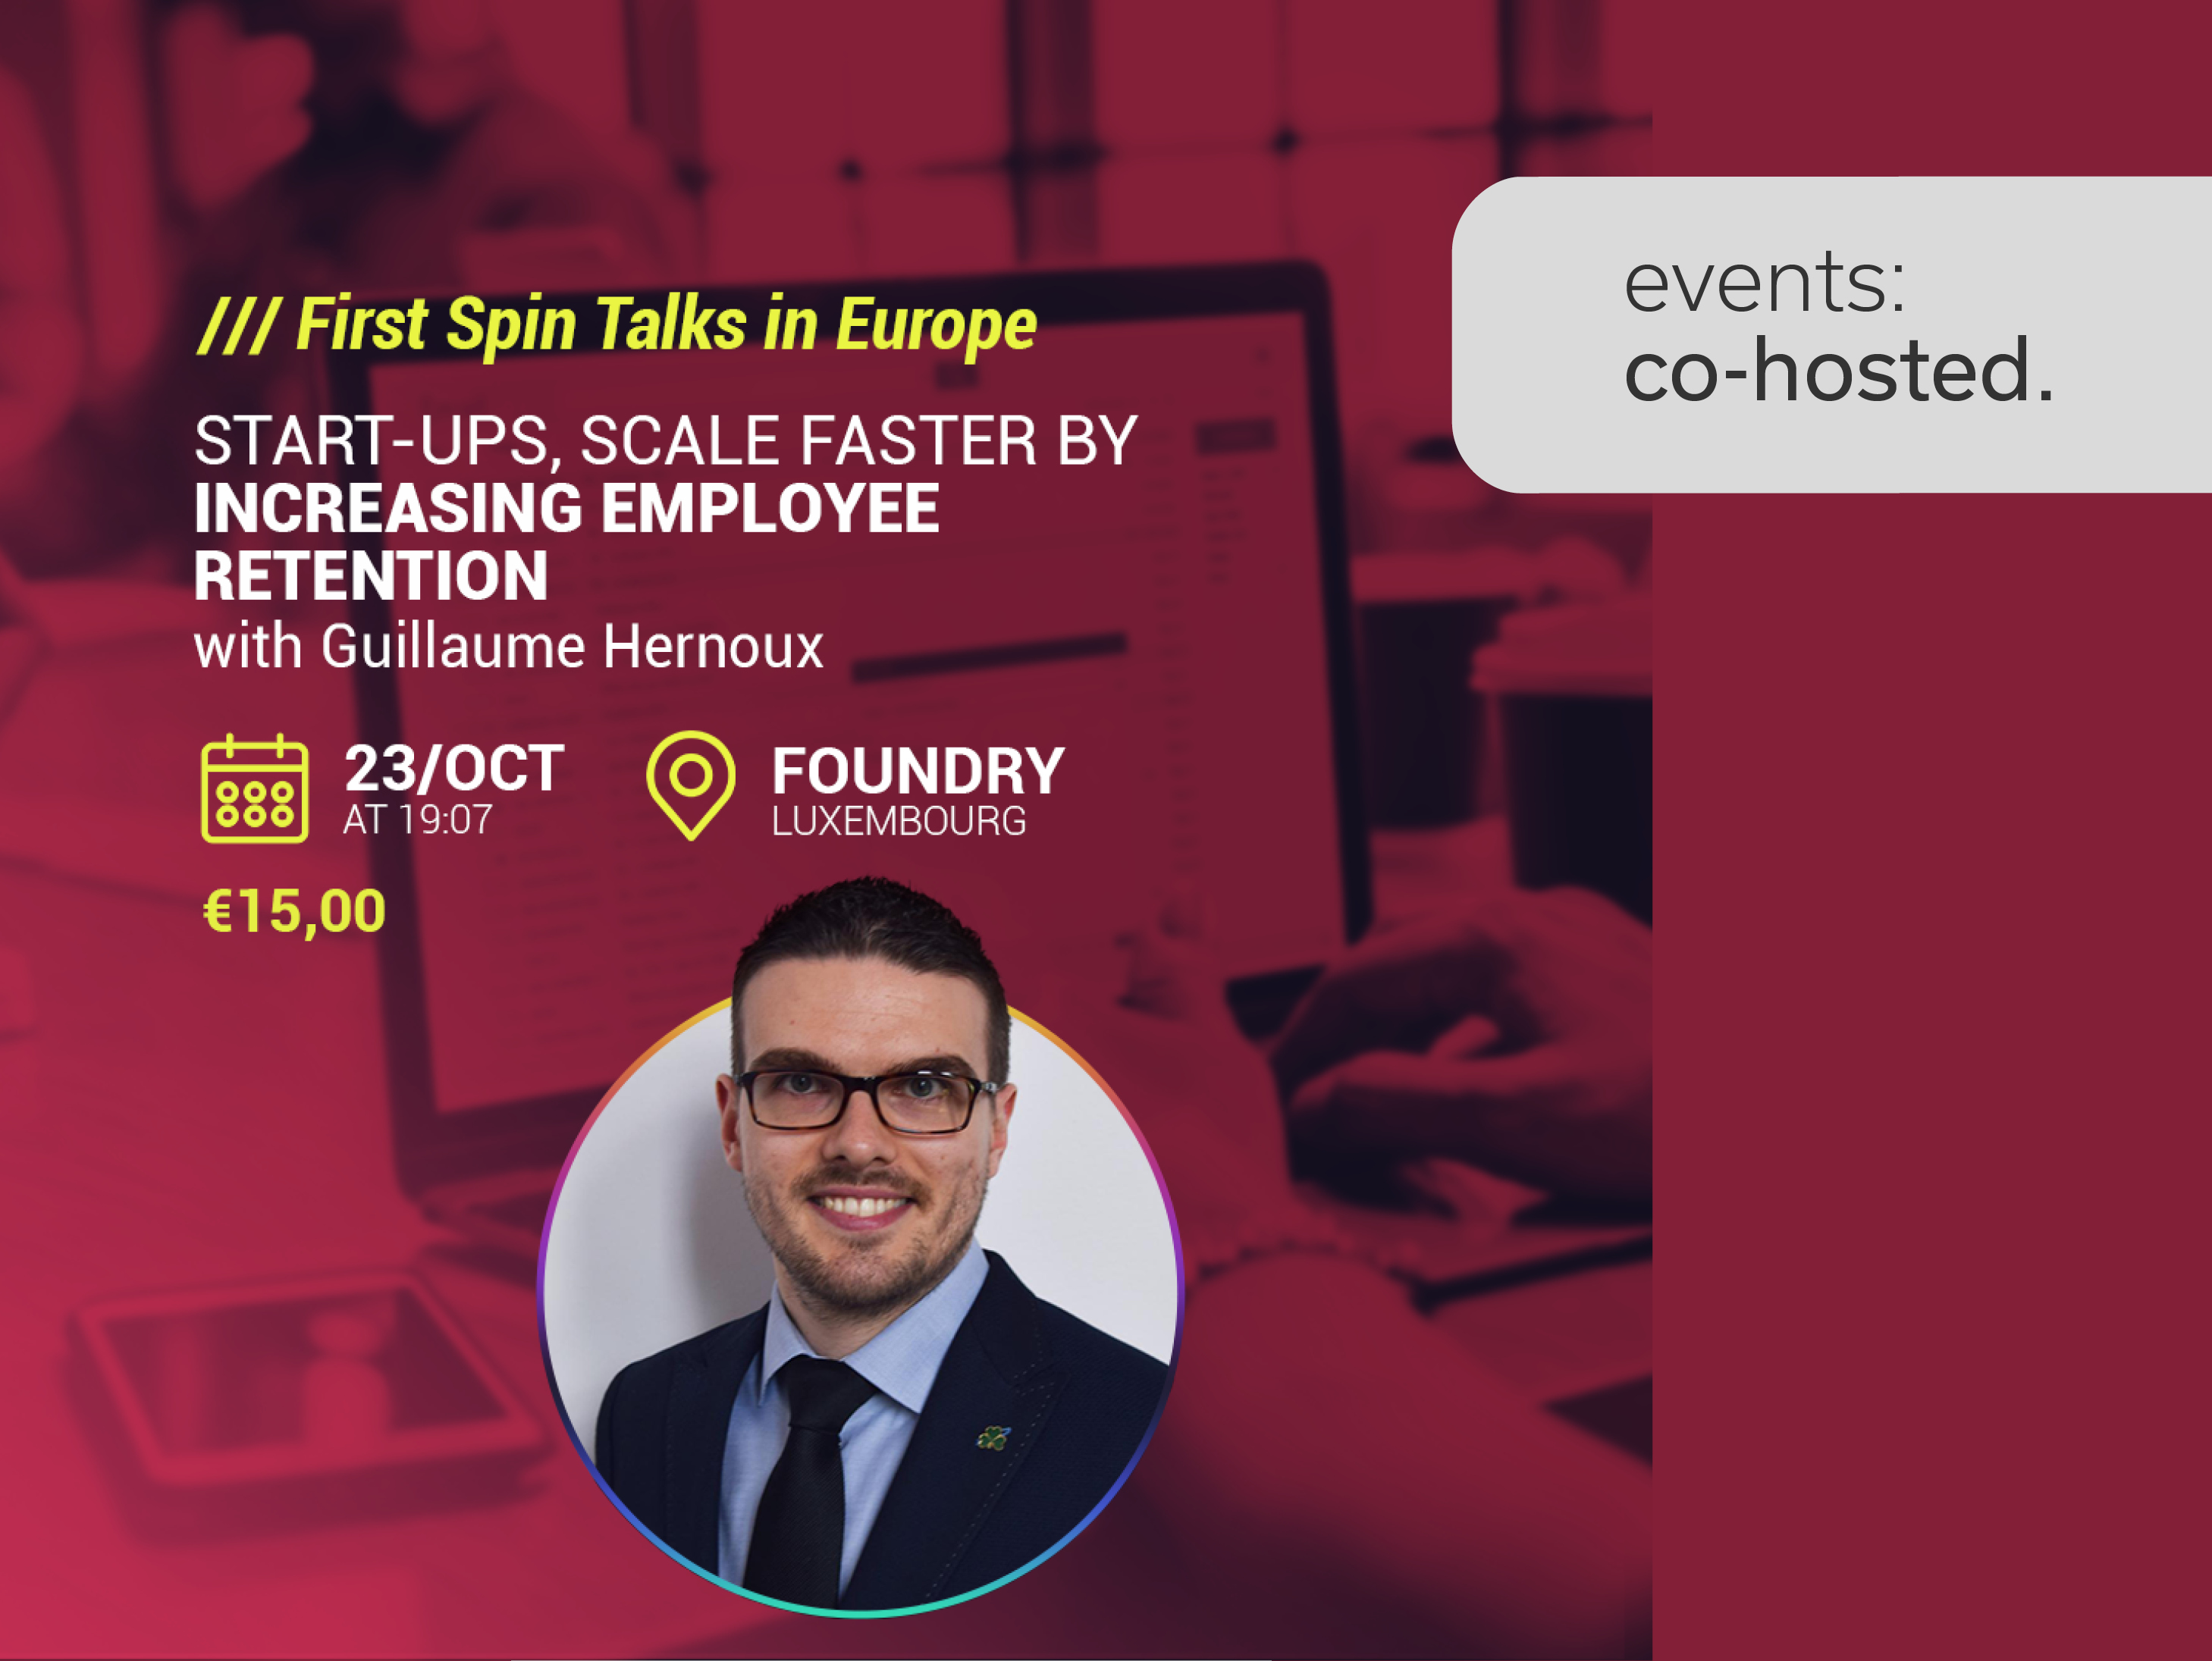 Foundry - Start-ups, scale faster by increasing employee